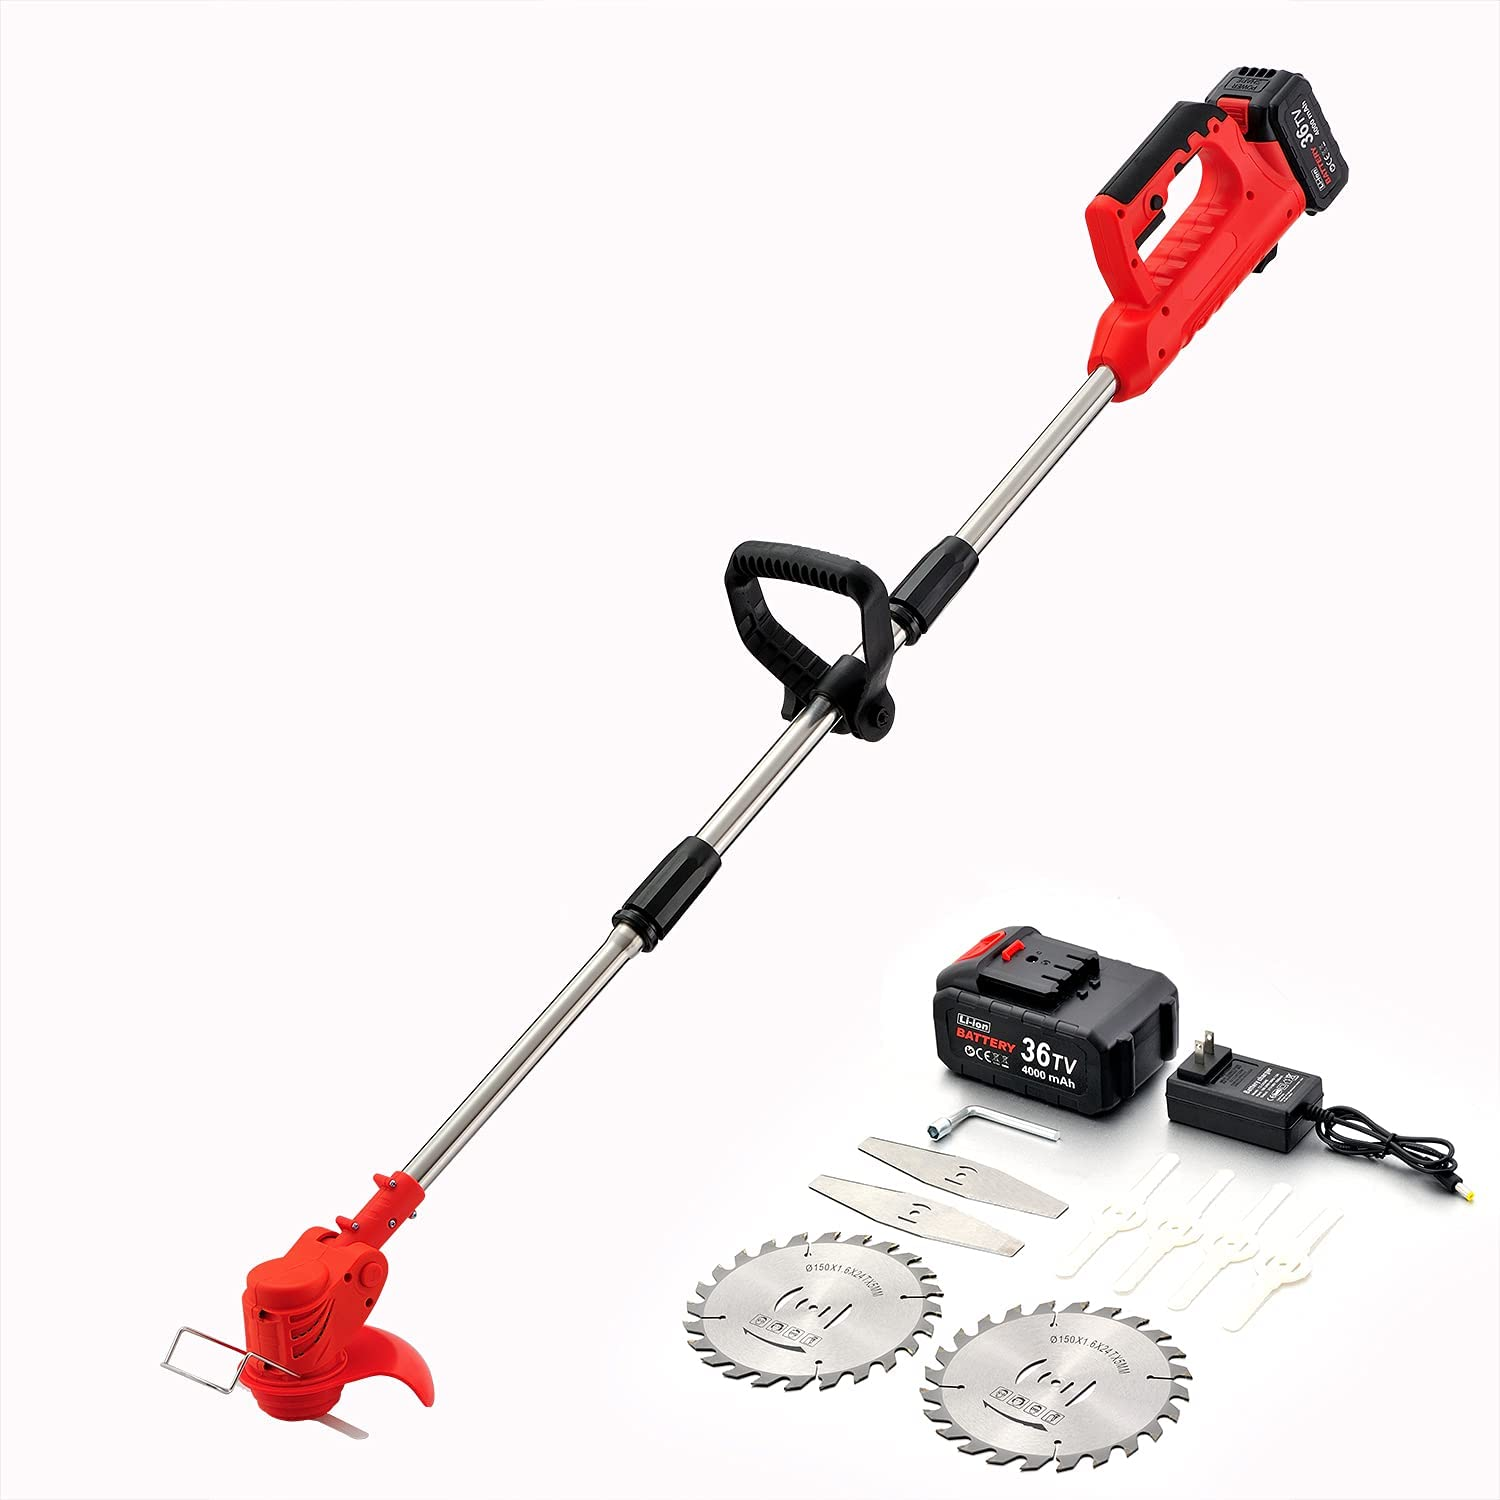 SANJIAN String Trimmer , 36V Large Powered Battery Weed Eater with 3 Types Blades, Sturdy Weed Eater String is Suitable for Lawn Garden Pruning and Trimming